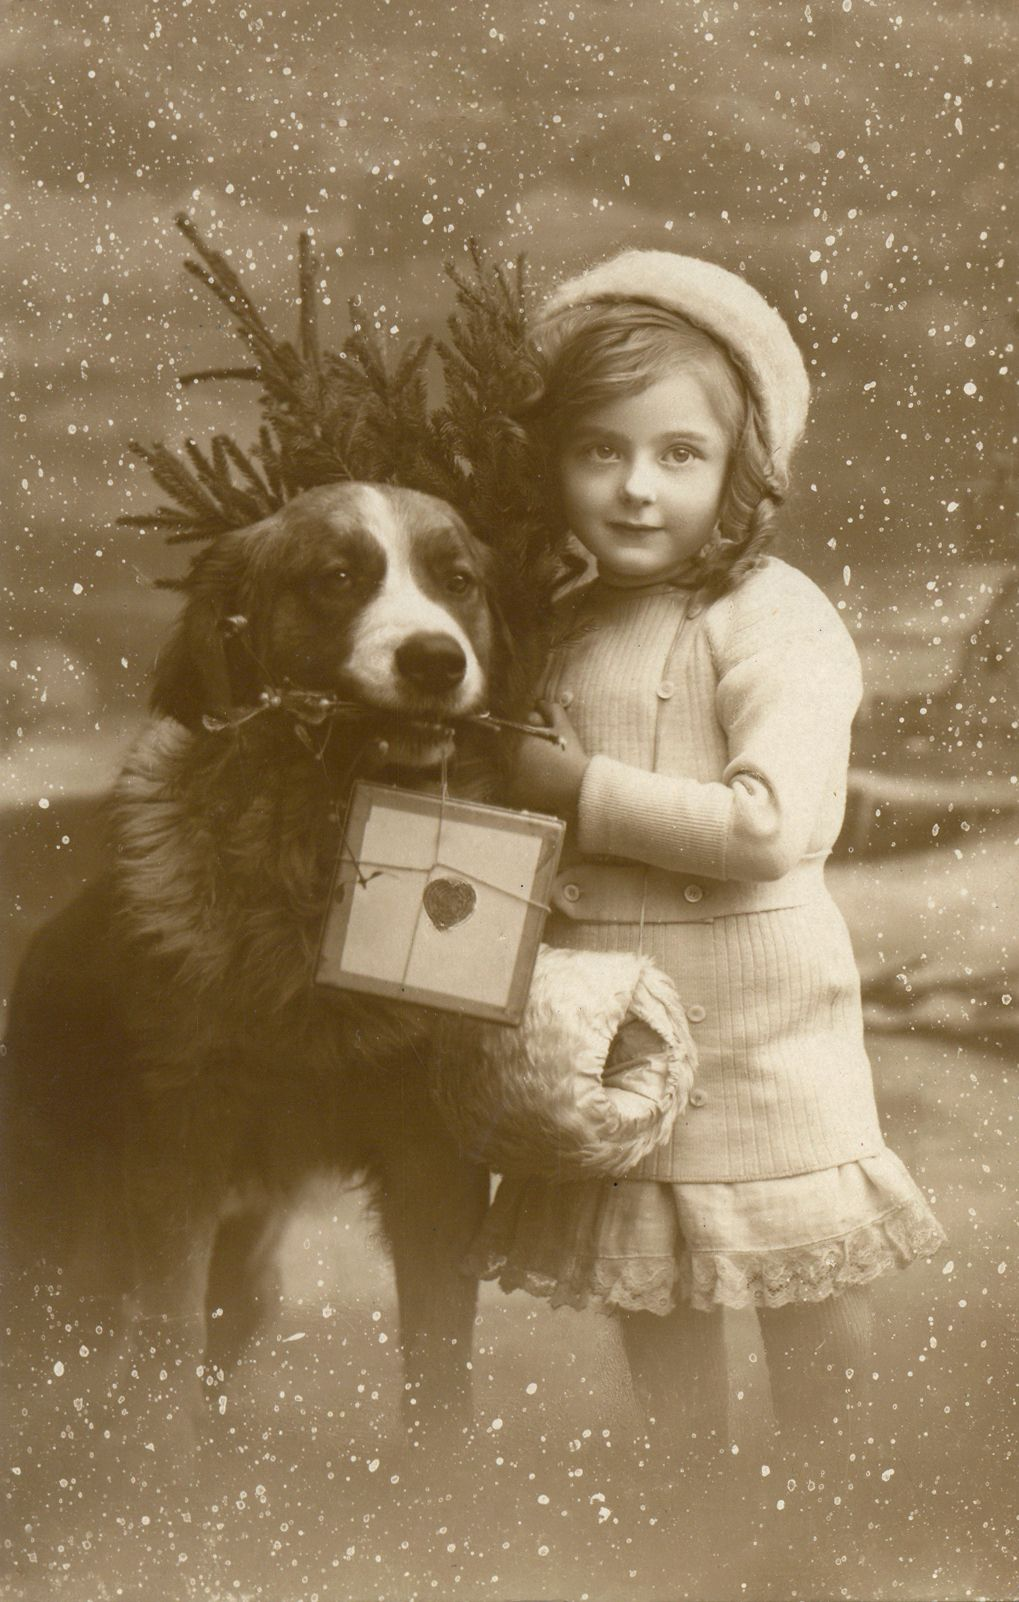 §§§ : A little girl and her Saint Bernard deliver Christmas : 1910s